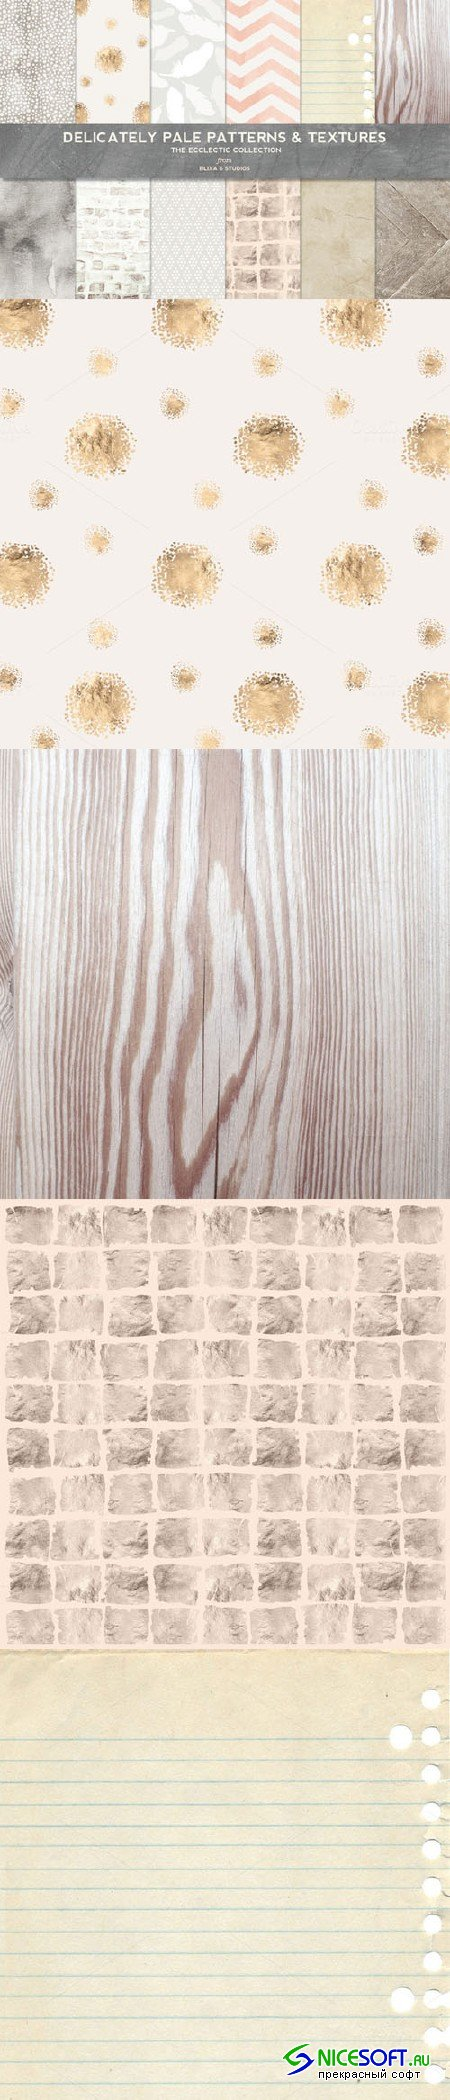 Delicately Pale Patterns & Textures - Creativemarket 274618